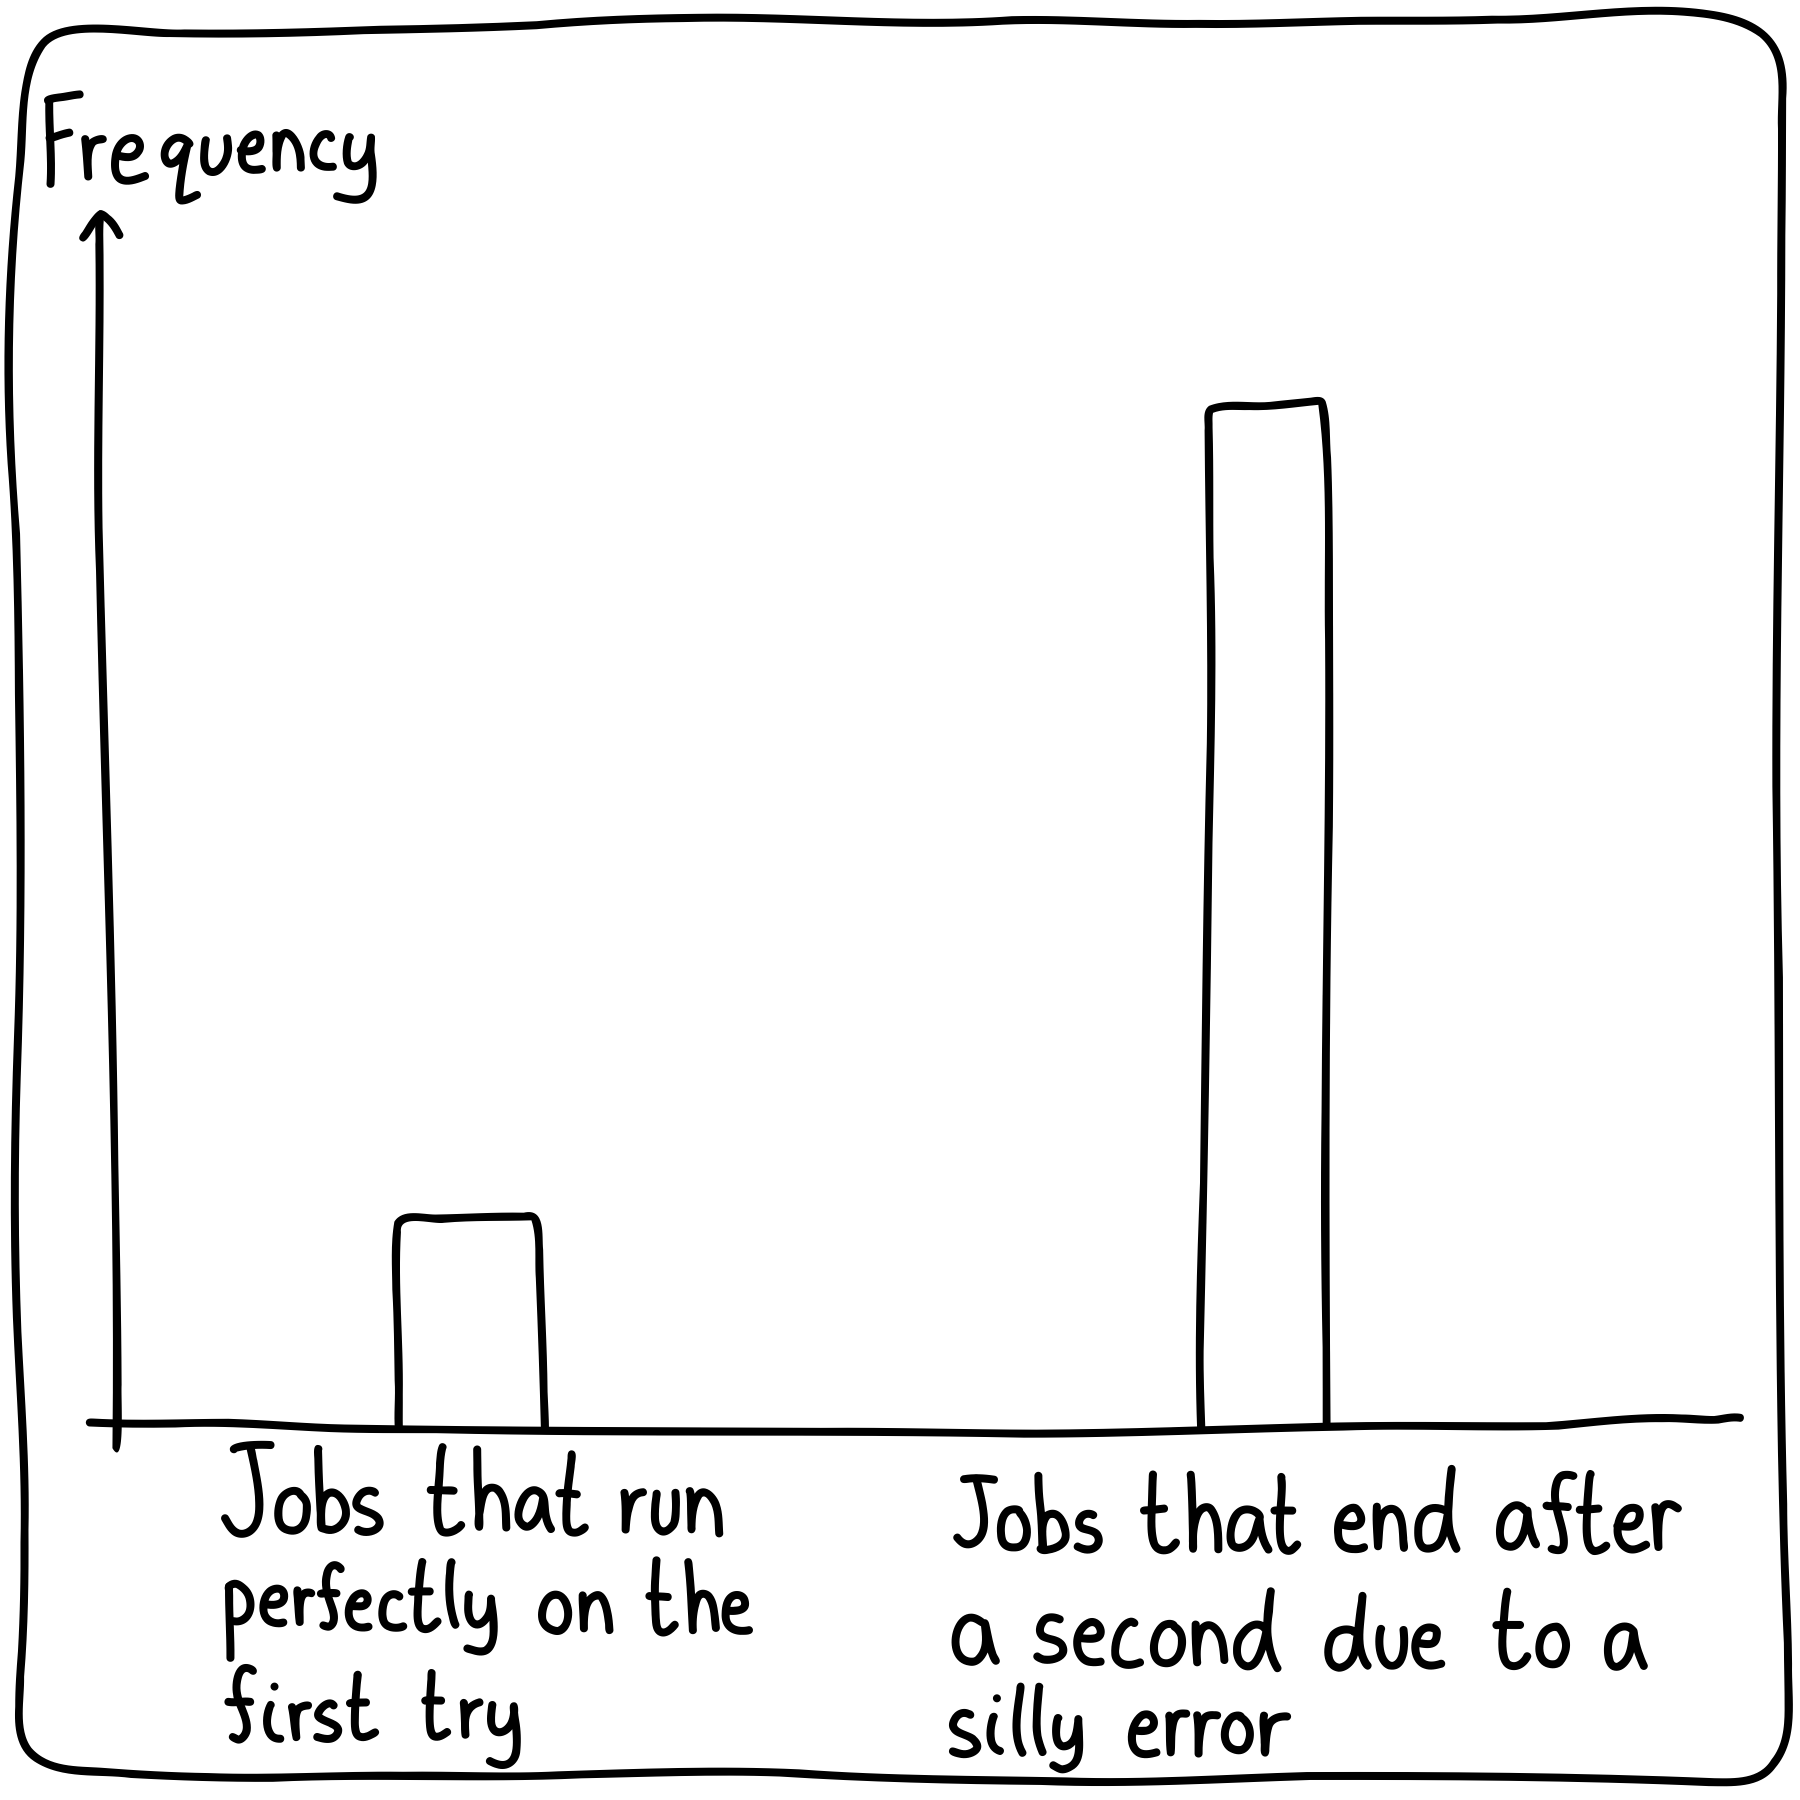 Two bars in a bar graph. The short one represents the jobs that launch and run without errors on the first try, and then a much larger bar represents the the jobs that end after two seconds from a silly typo.